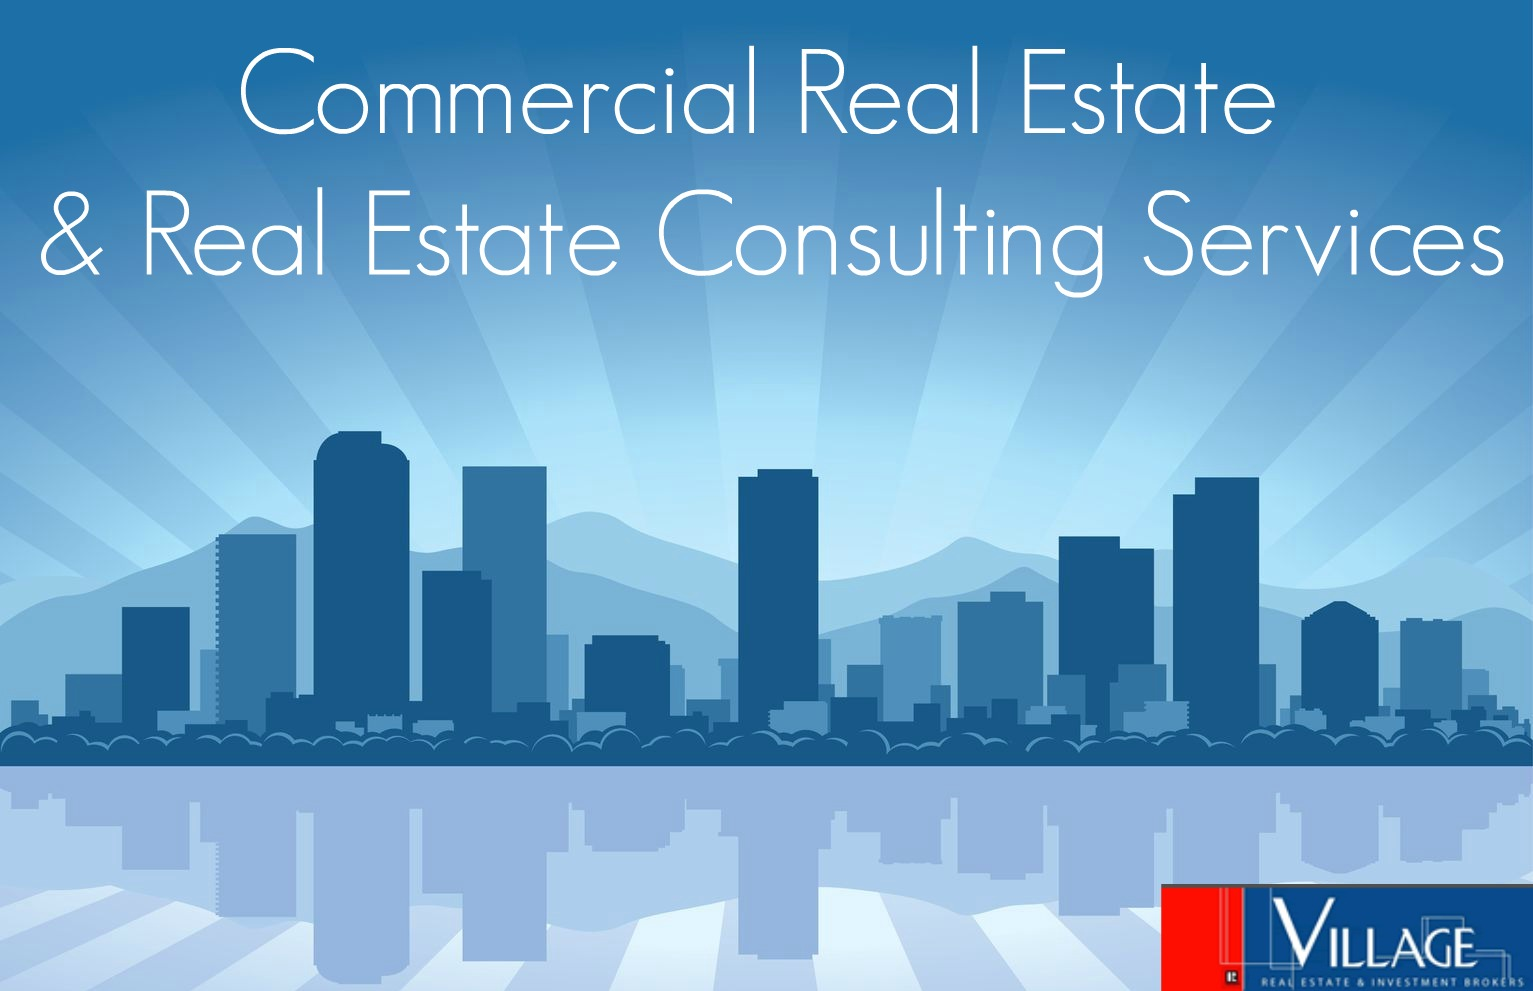 Commercial Real Estate and Real Estate Consulting Services